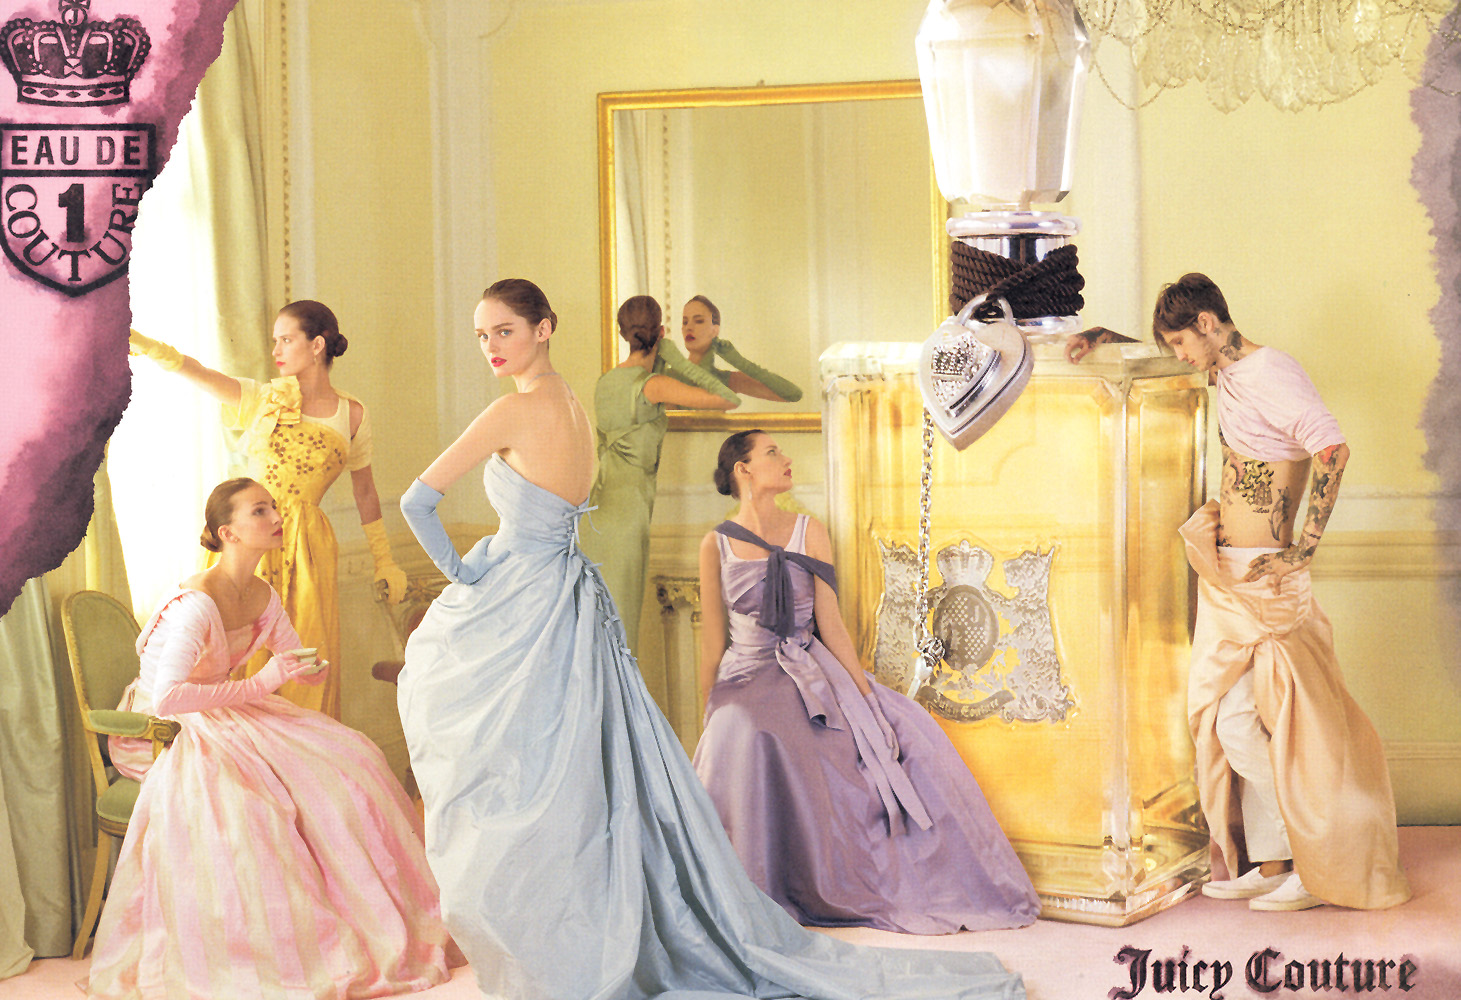 Juicy Couture 2006 by Tim Walker